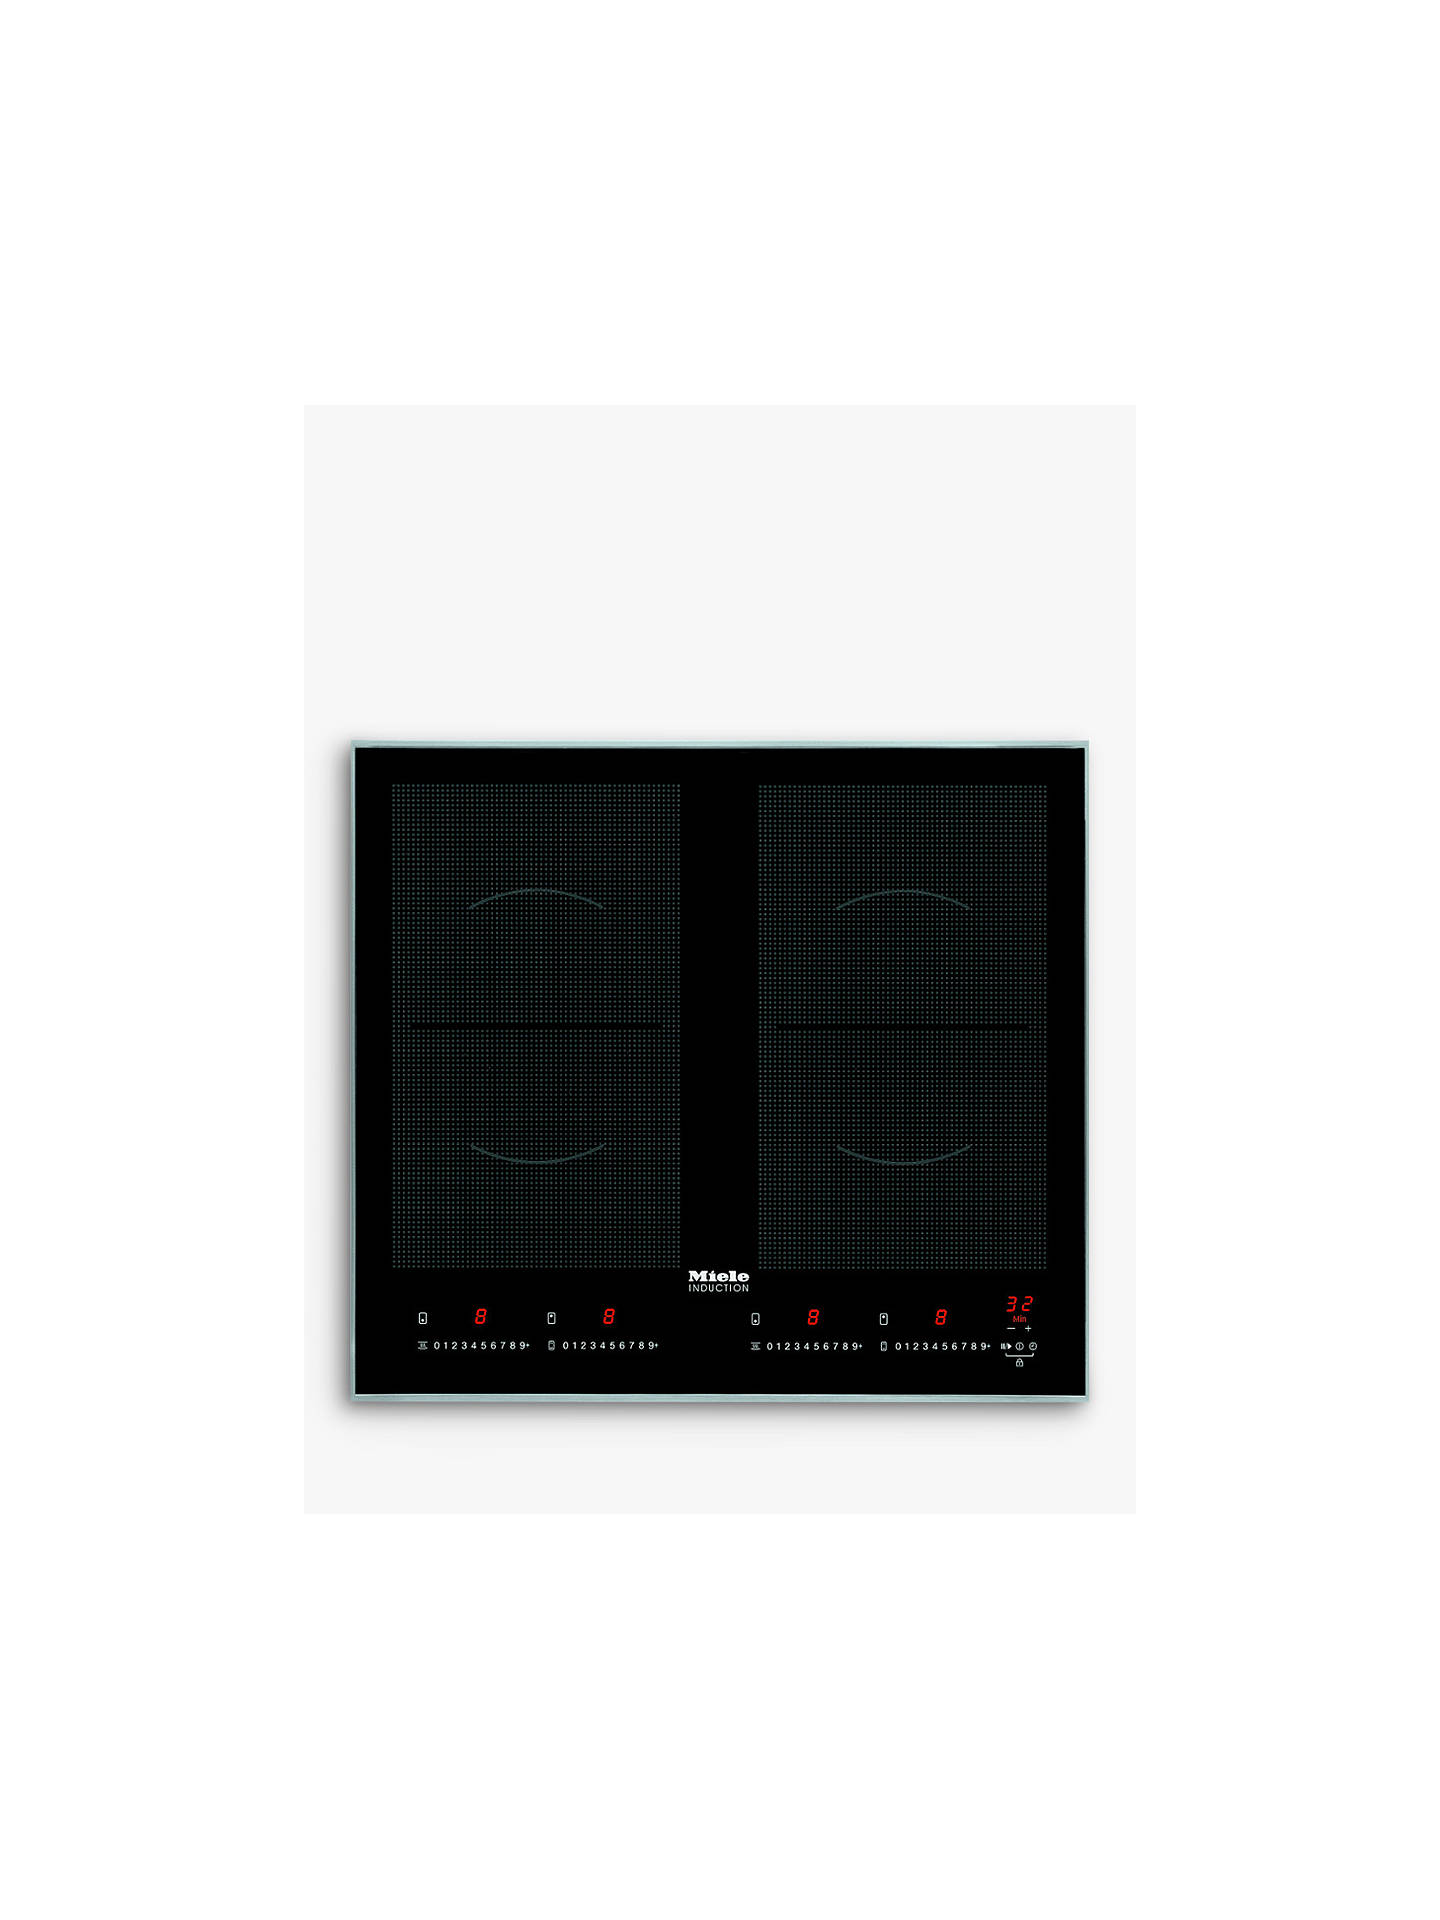 BuyMiele KM6328-1 Induction Hob, Black Online at johnlewis.com